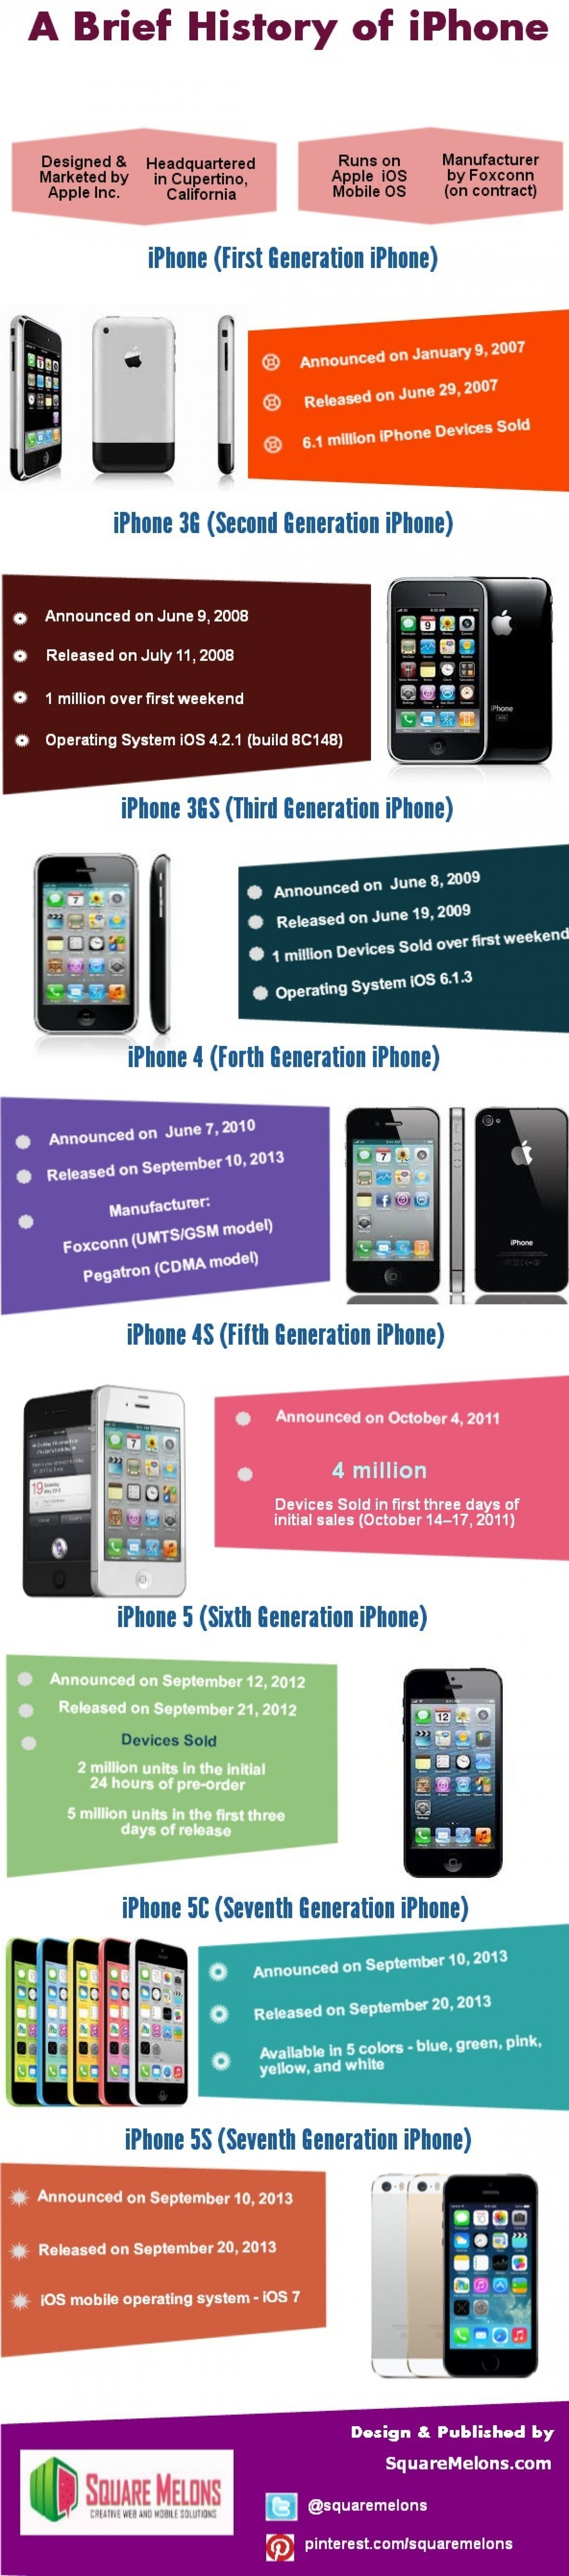 A brief History of the iPhone Infographic